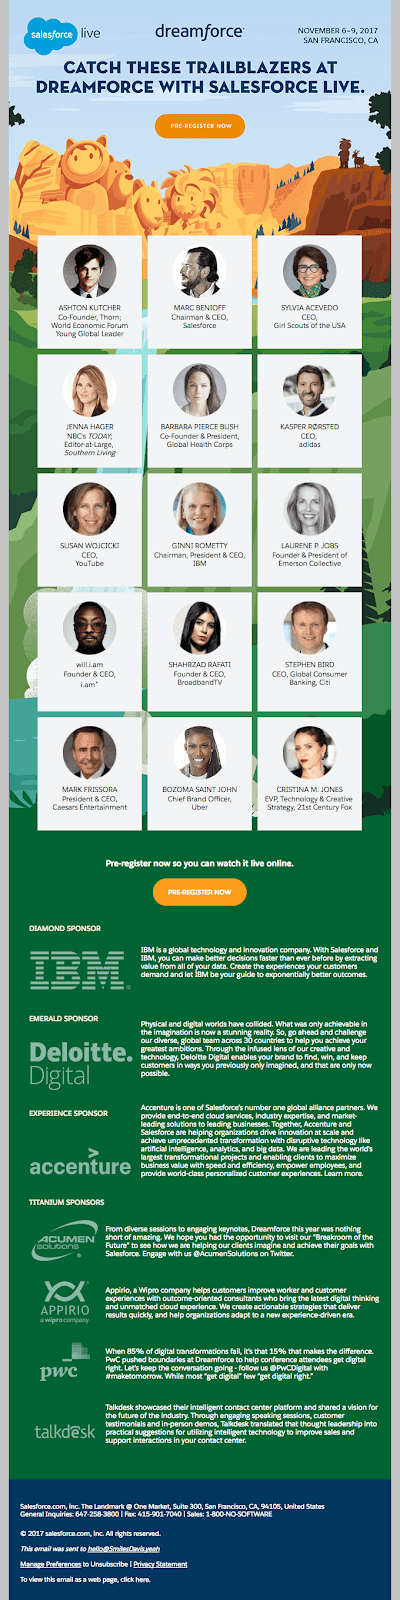 Dreamforce event invitation email design